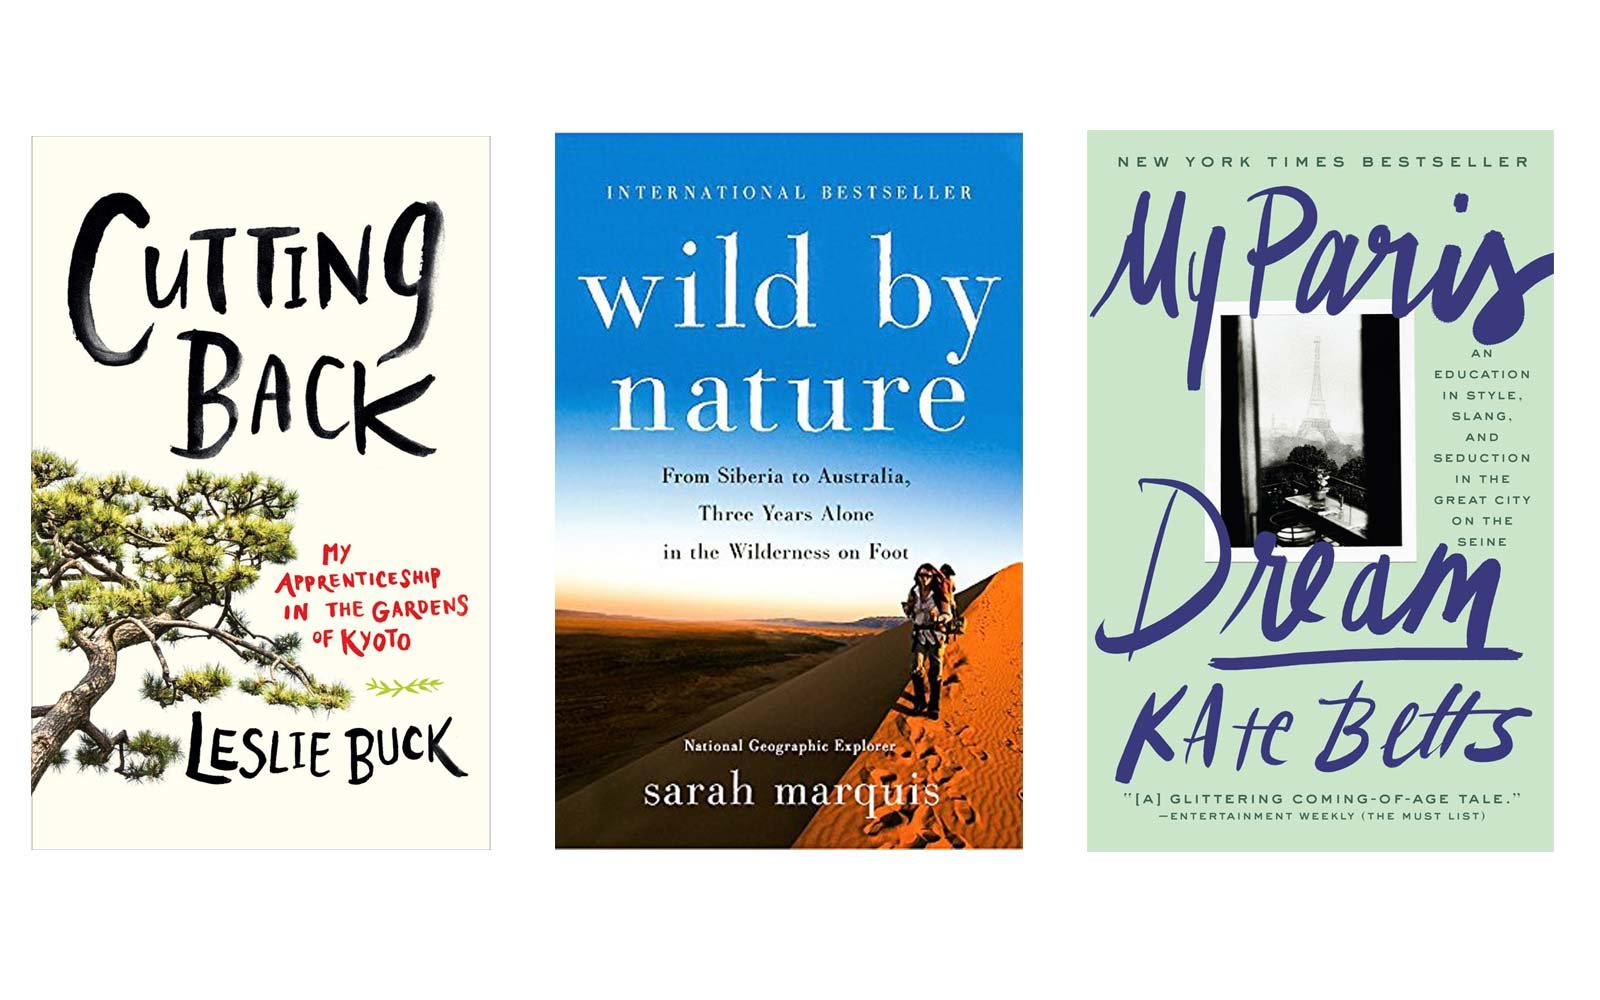 cutting-back-wild-by-nature-VACAYBOOKS0119.jpg